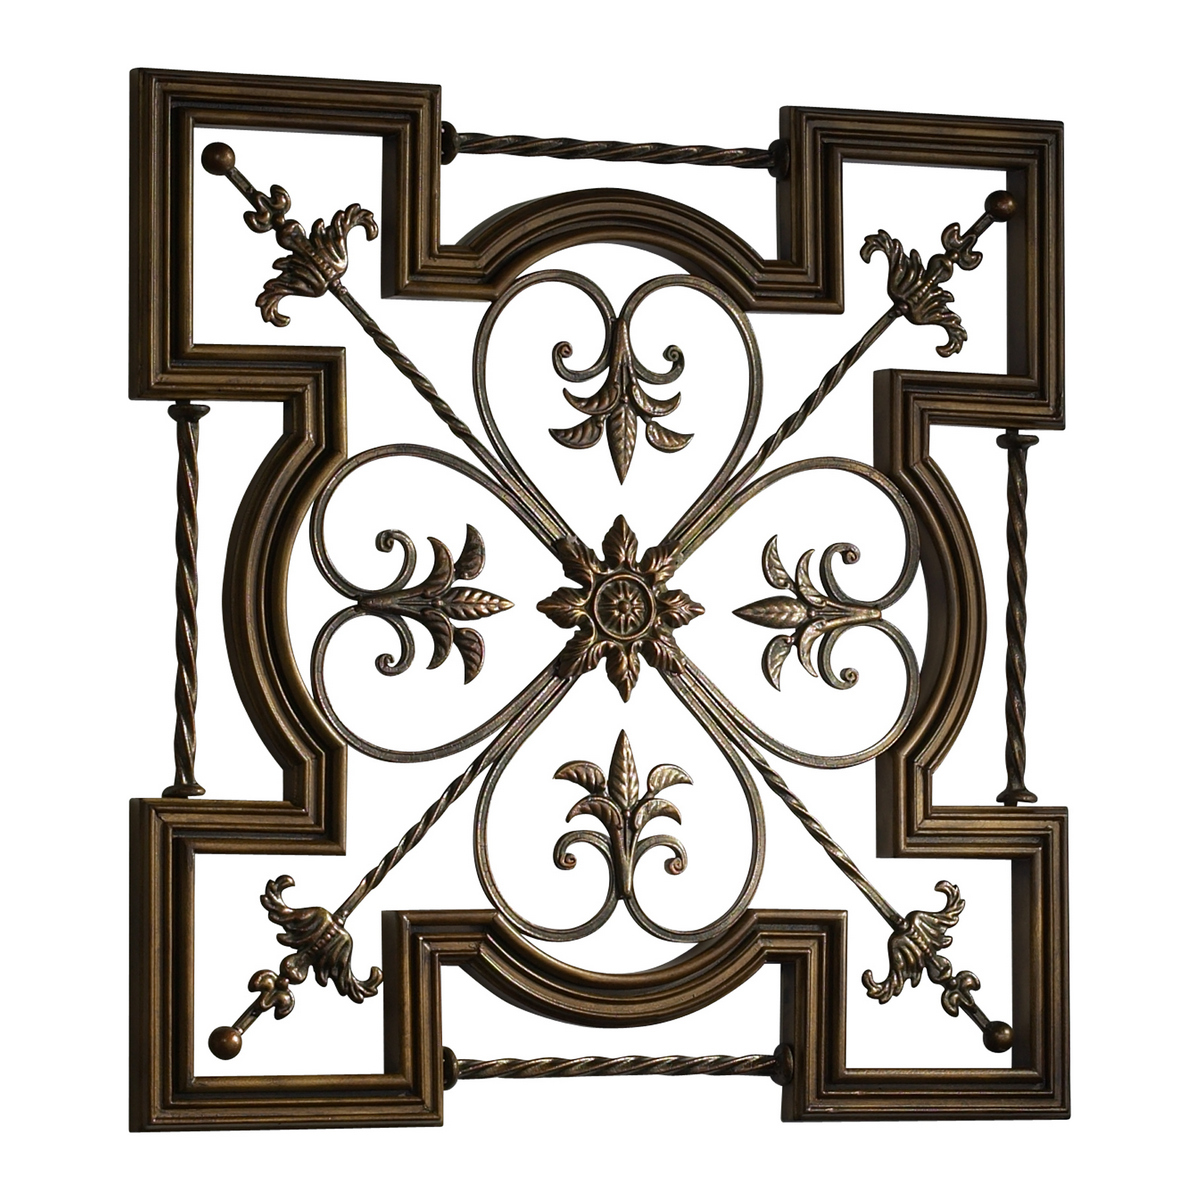 wall sconce - wall decor thelightingpros is a lighting store